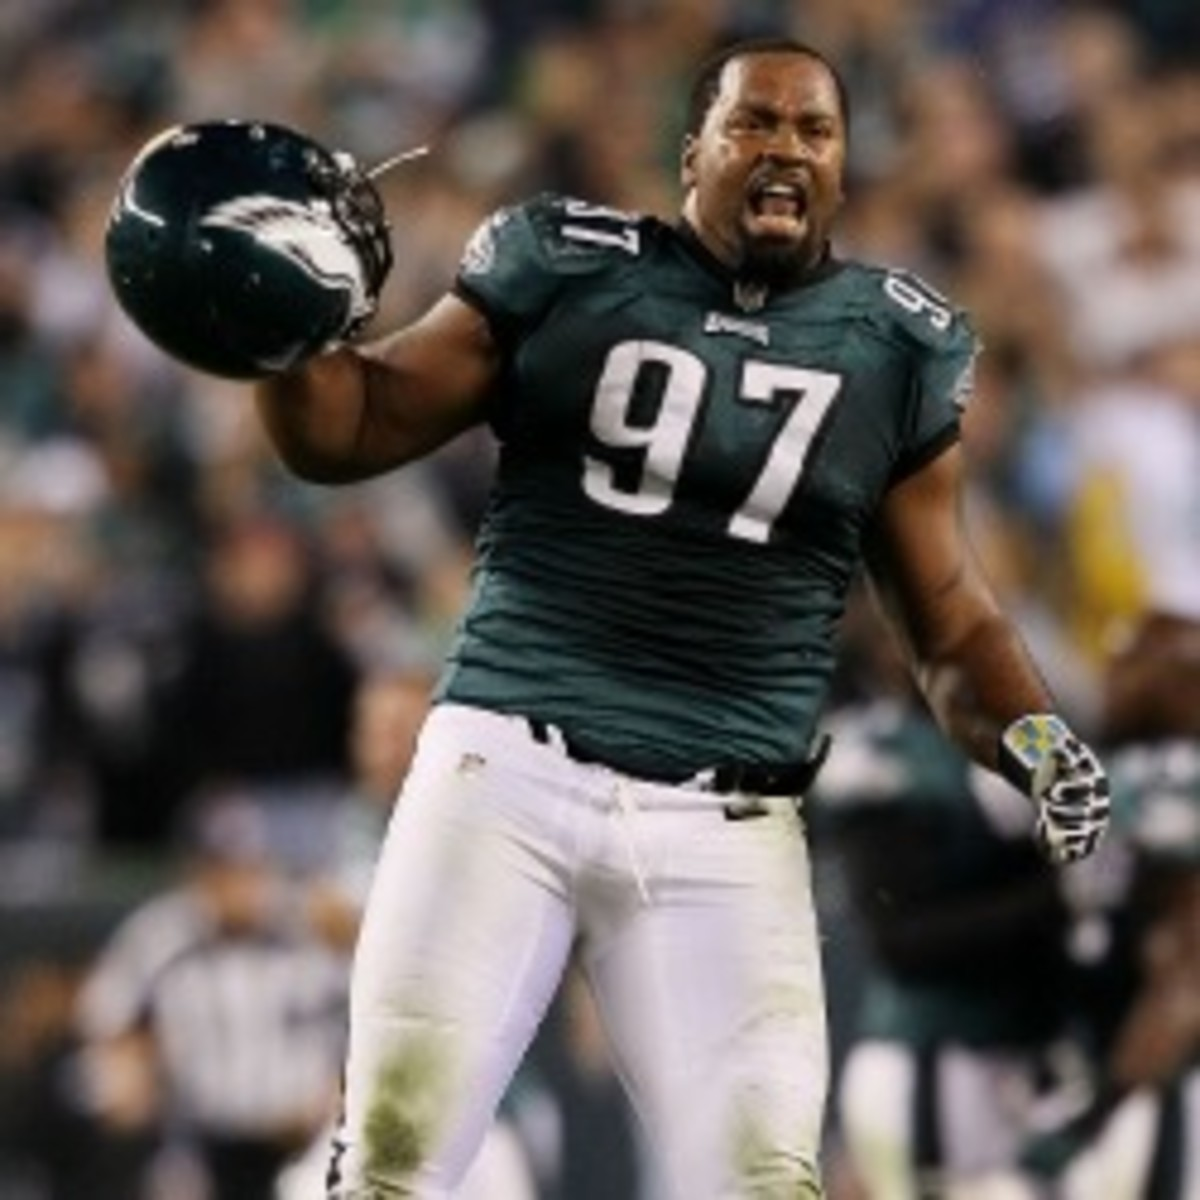 The Eagles released defensive tackle Cullen Jenkins after two seasons with the team. (Alex Trautwig/Getty Images)